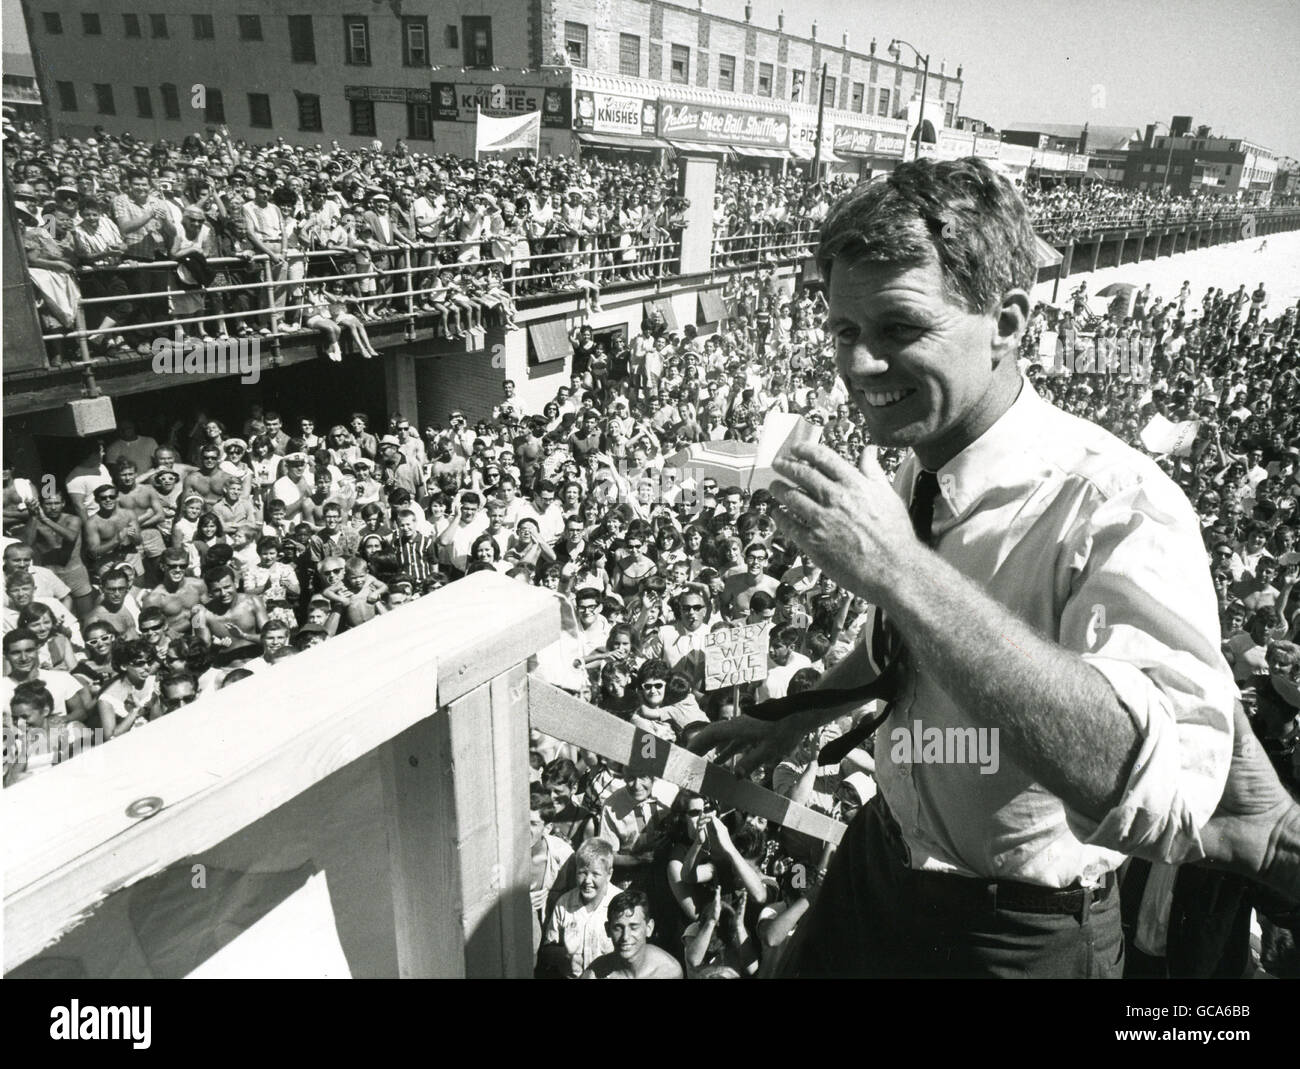 Robert Kennedy addresses a crowd from a lifeguard platform during his campaign as a candidate for US Senate from - Stock Image